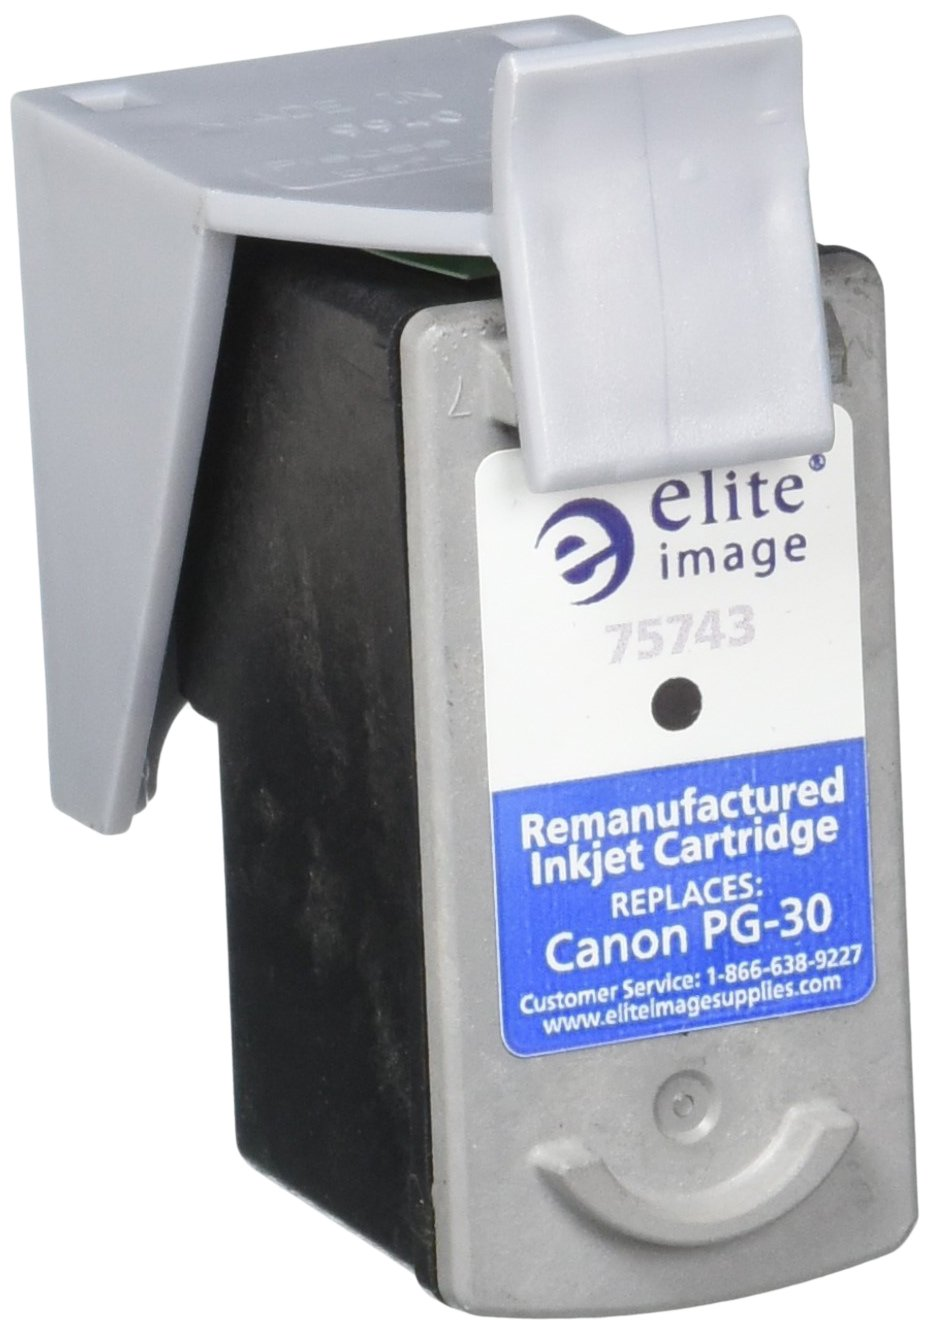 Amazon.com: Elite Image ELI75743 Remanufactured CNMPG30 Ink ...